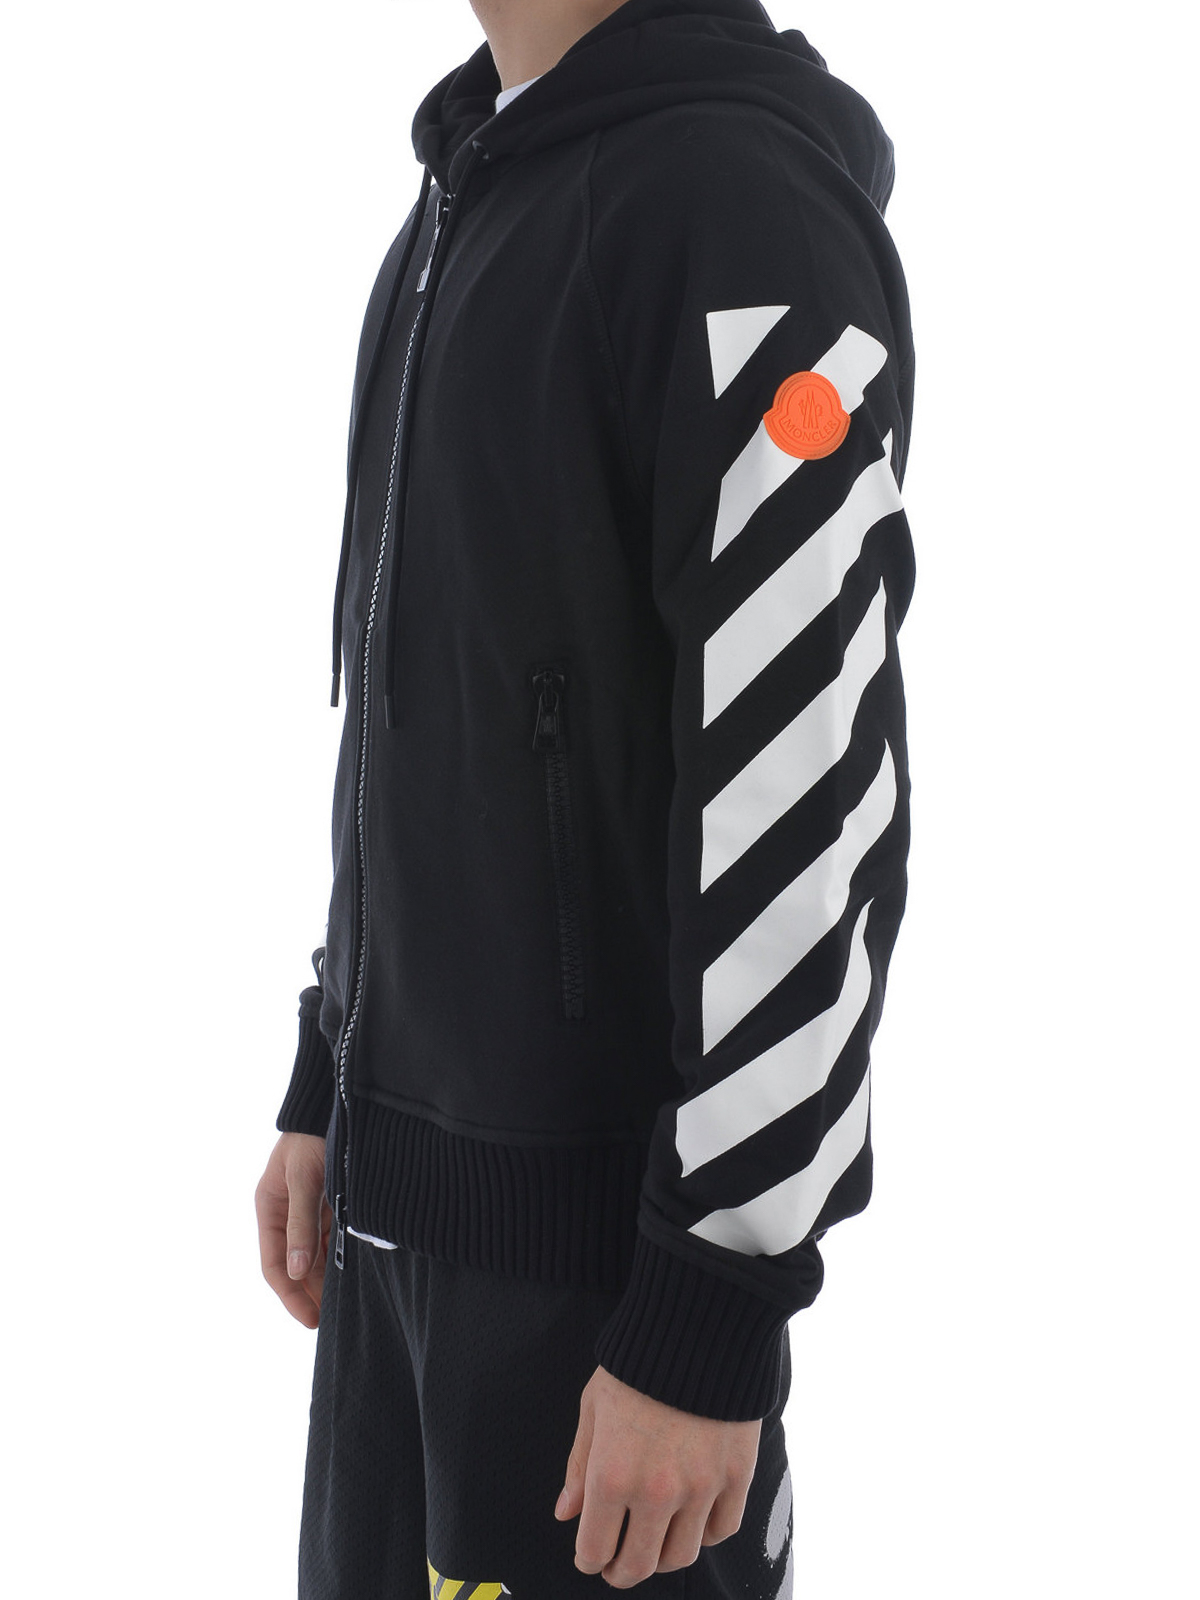 MONCLER buy online Off White cotton sweatshirt